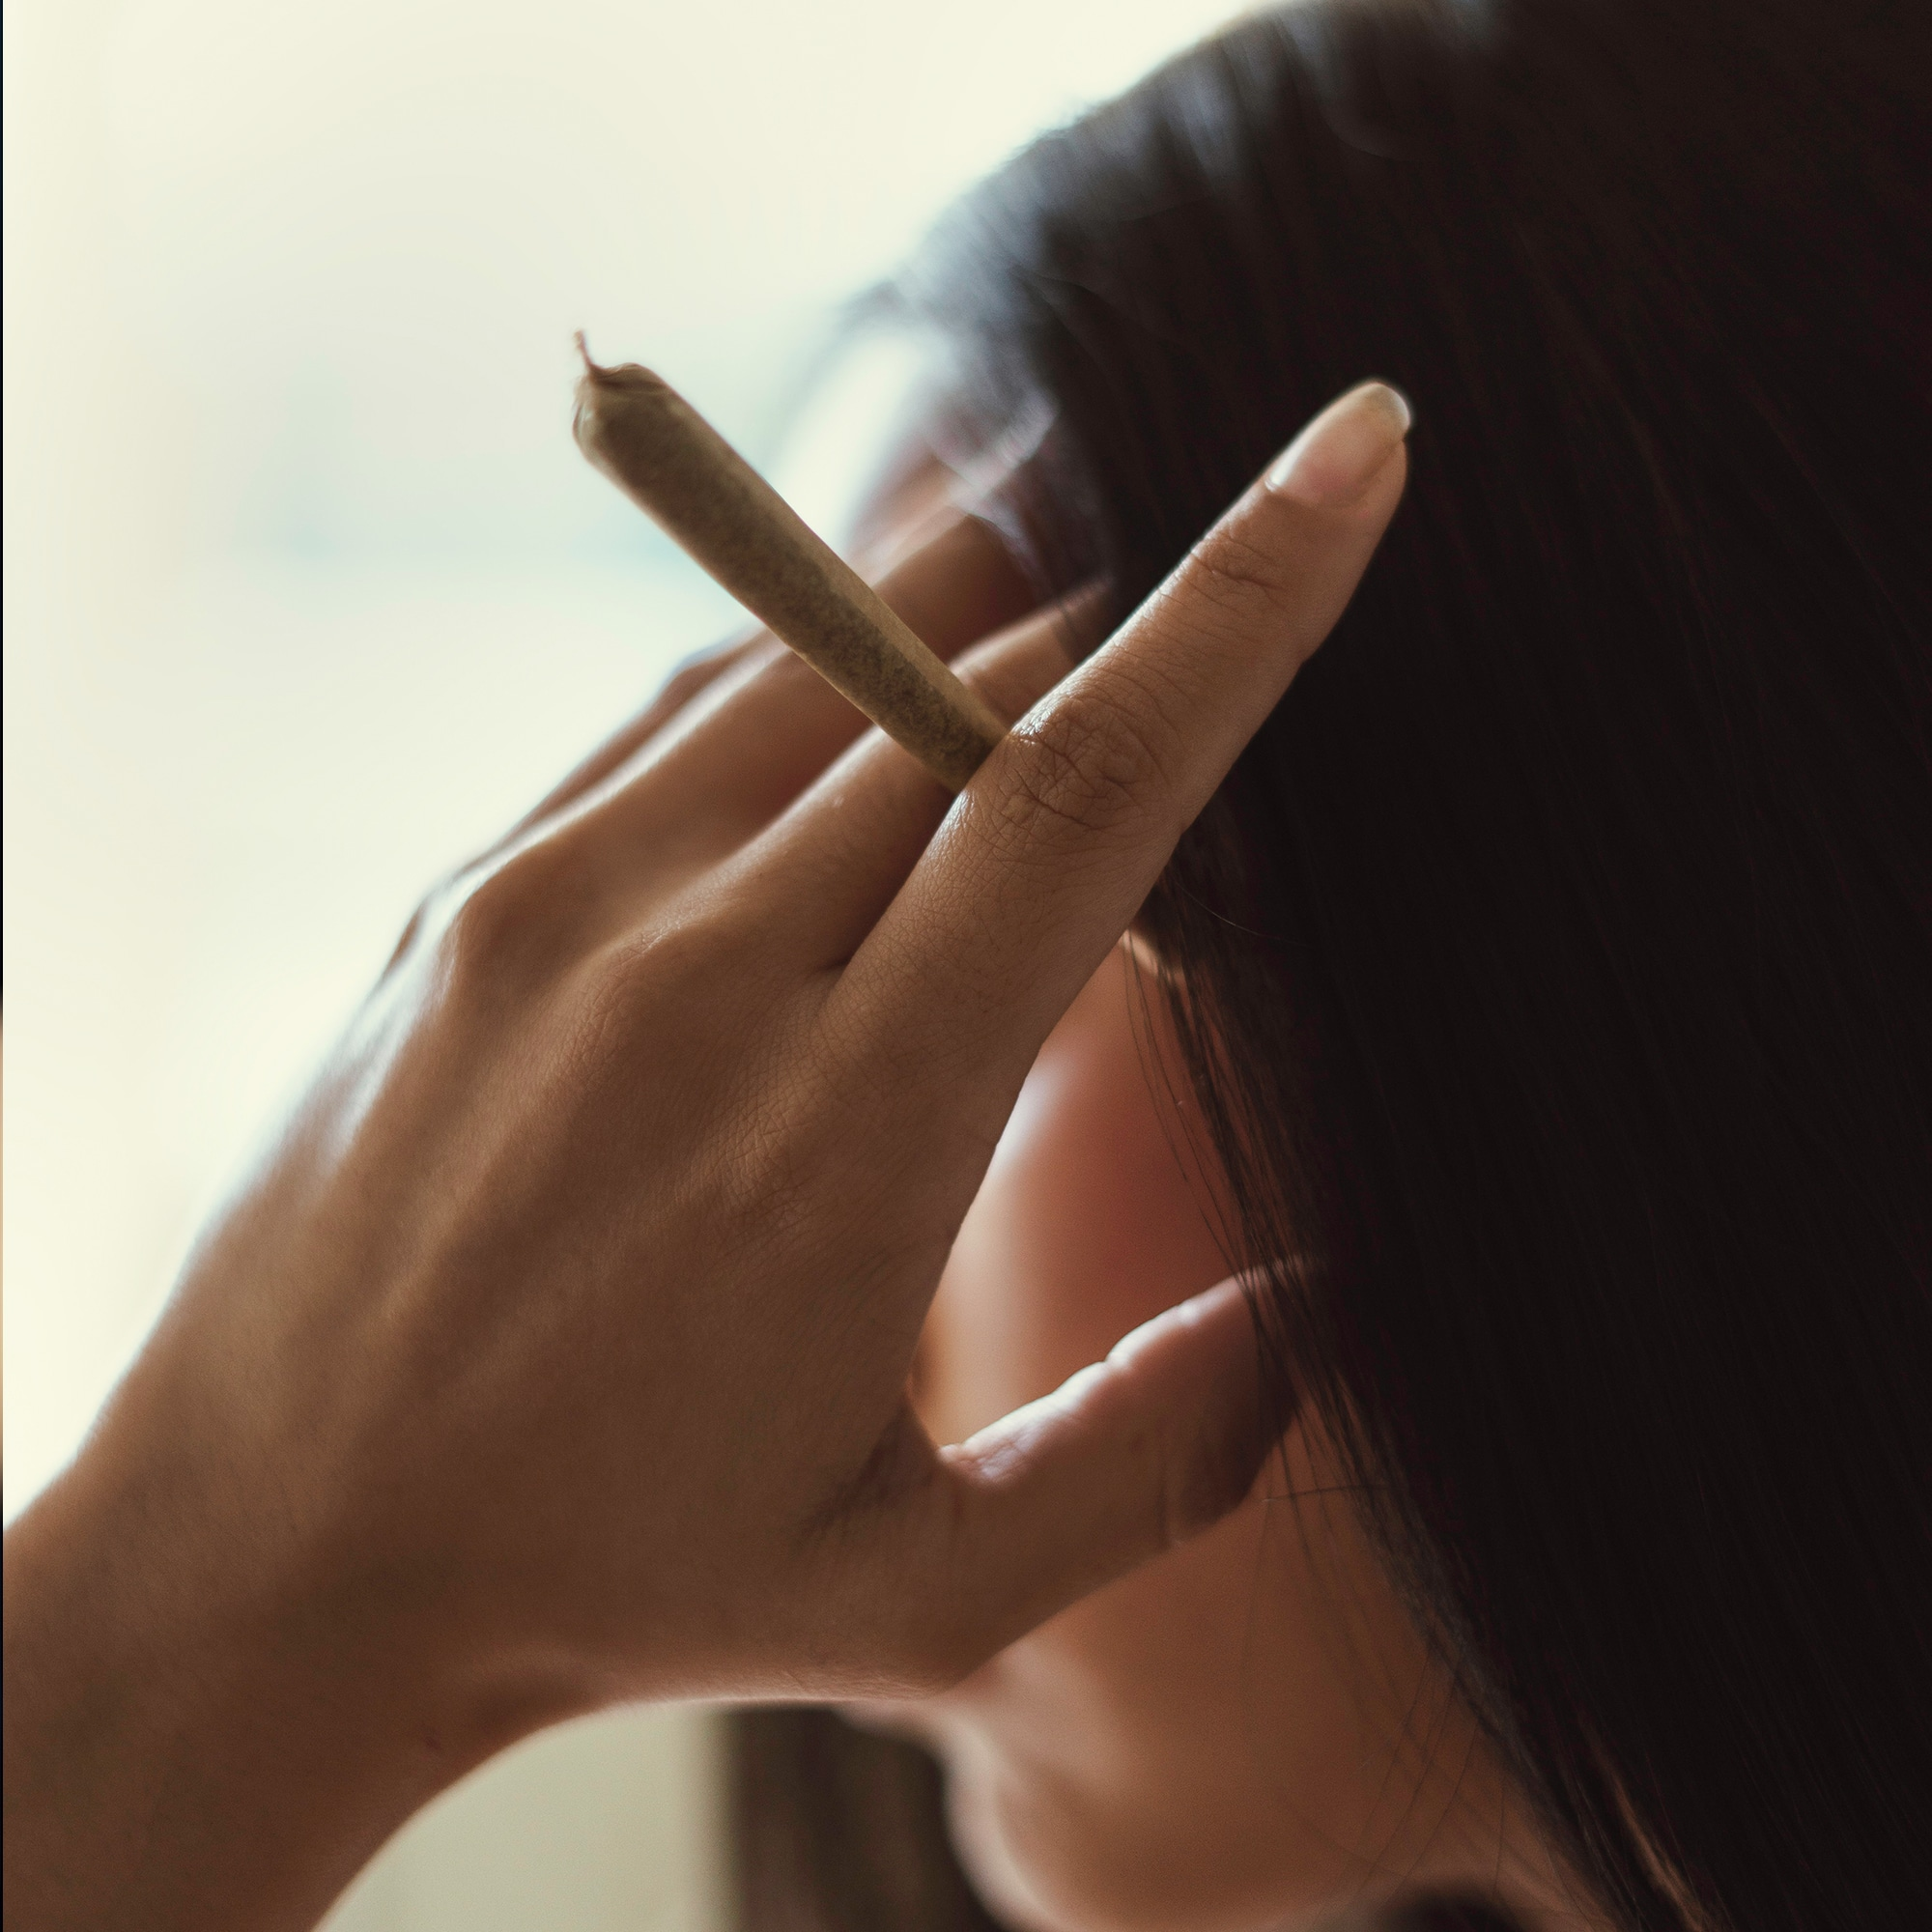 Image of woman holding a joint